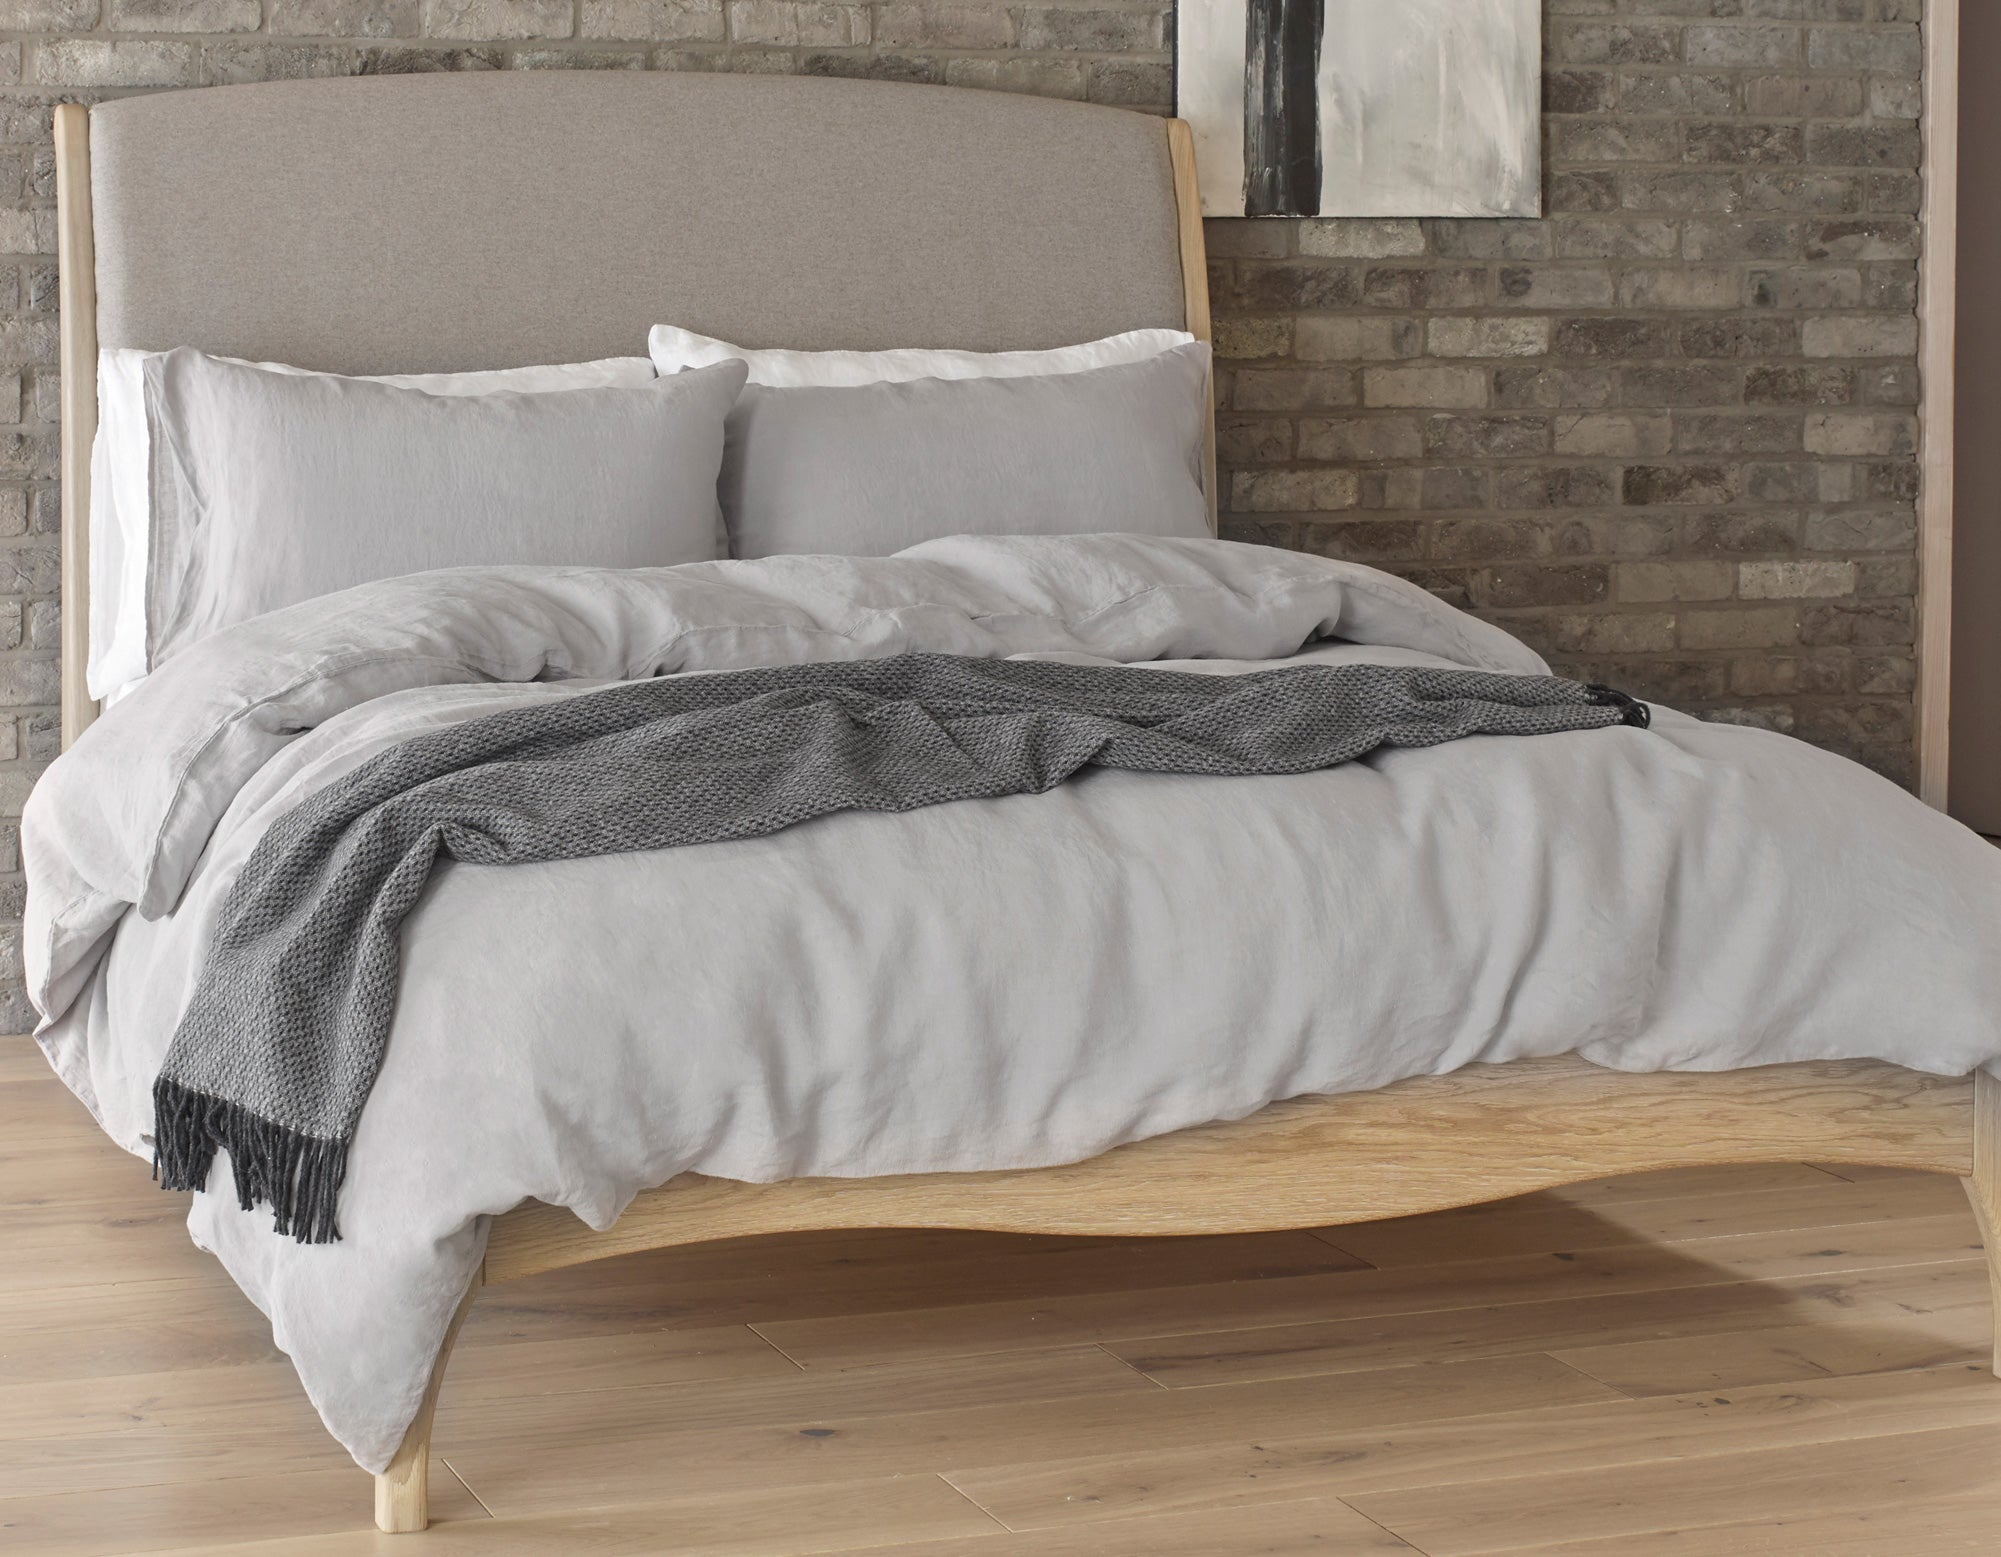 Linen Bedding in Calm Grey | scooms